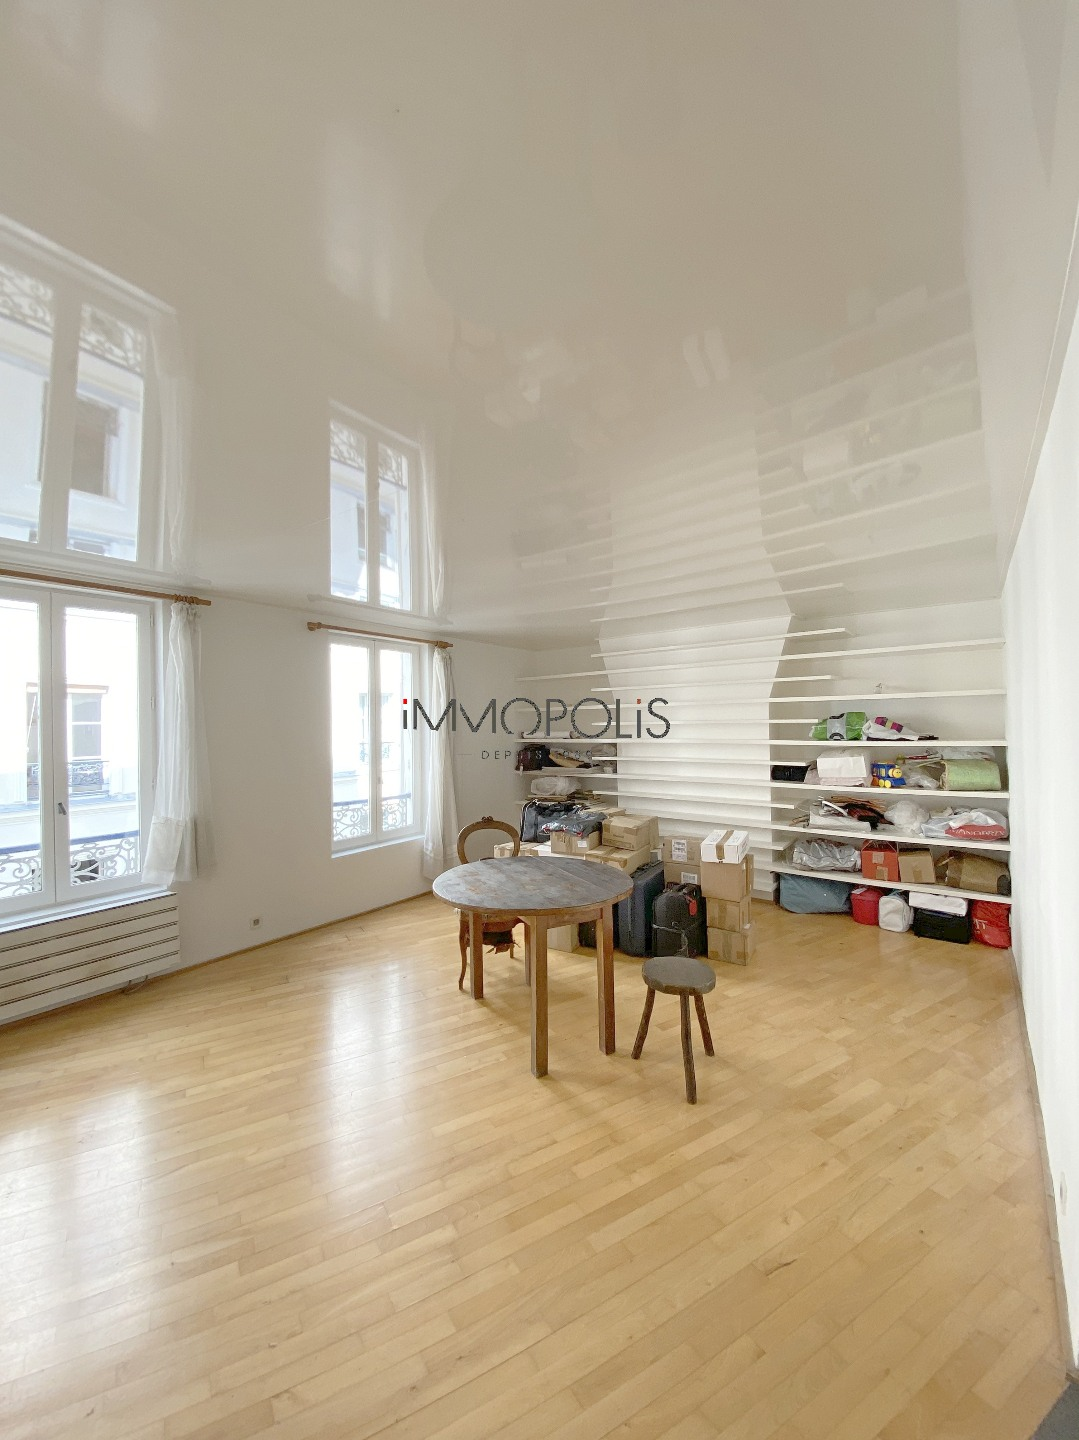 In the heart of the Abbesses, rue Berthe, beautiful 1 bedroom apartment with a perfect plan, in good condition, crossing onto a quiet street and open courtyard! 9